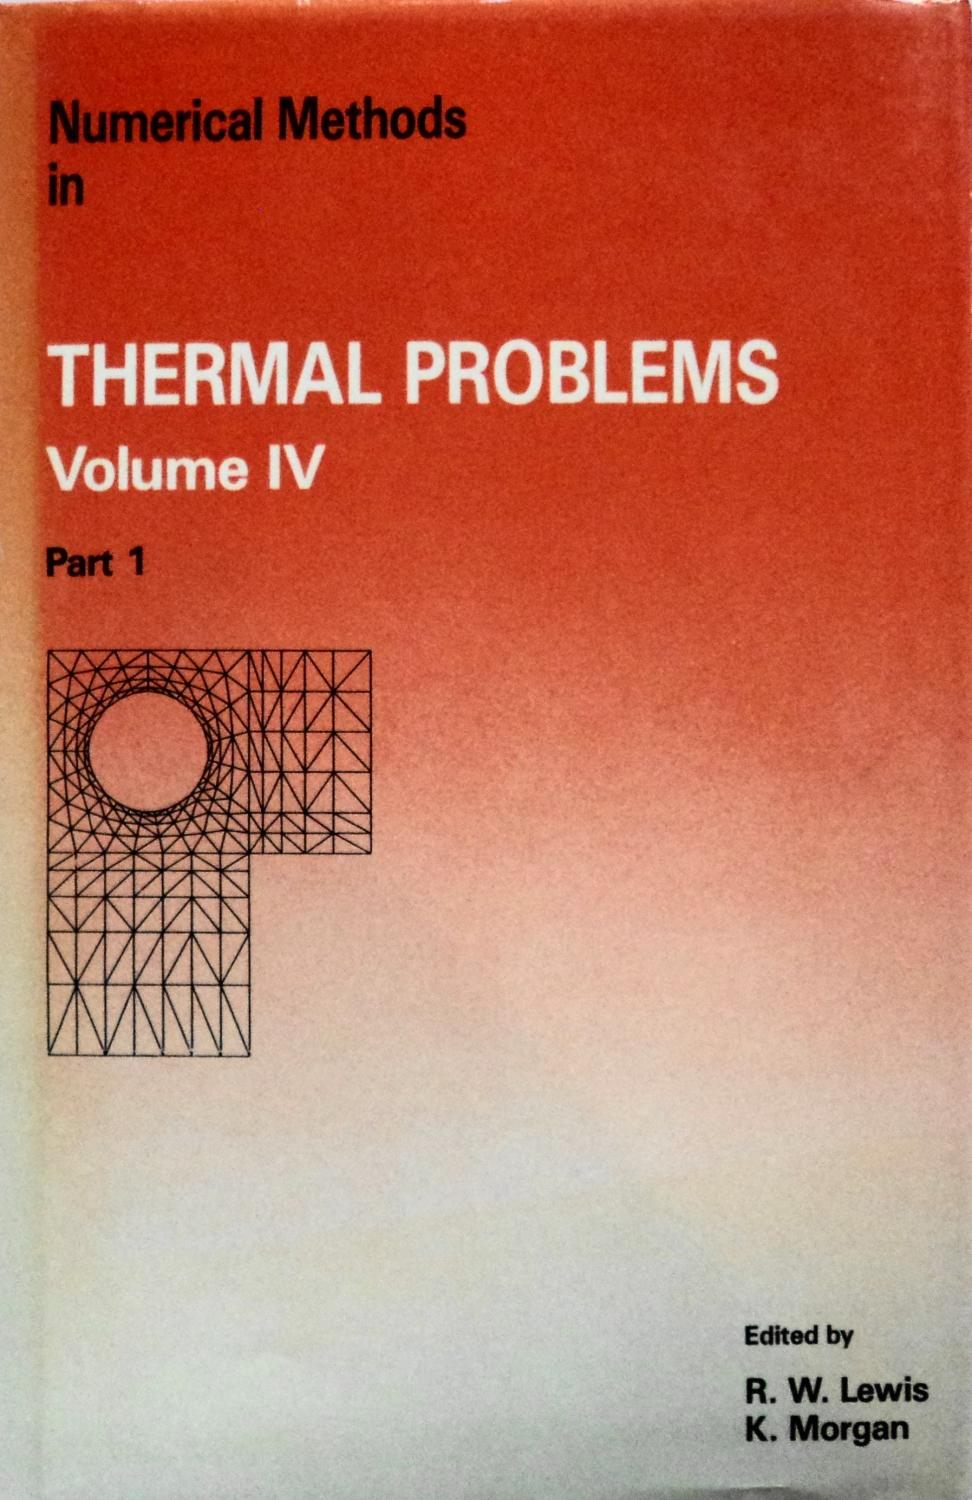 Numerical Methods in Thermal Problems: Volume IV, Part 1 & 2 (Proceedings of the Fourth International Conference held in Swansea, U.K. on 15th-18th July 1985) - Lewis, R. W.; Morgan, K.